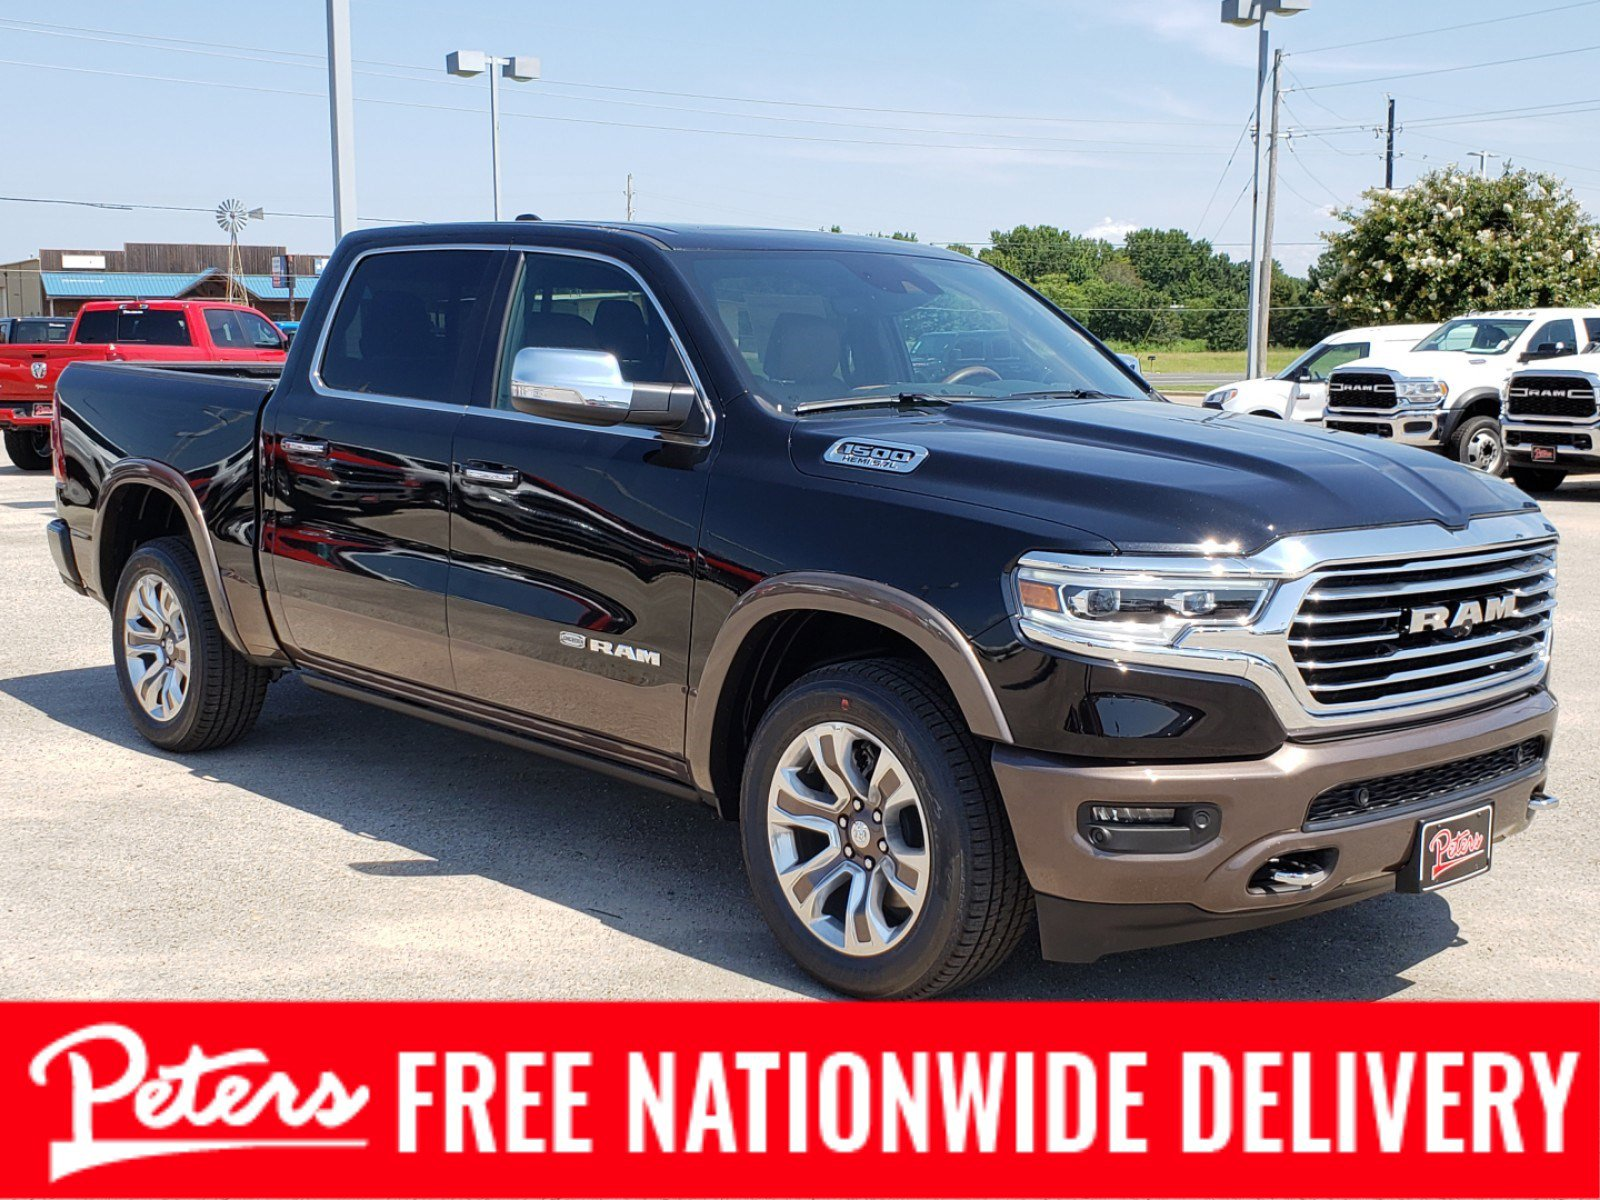 New Ram 1500 Longhorn For Sale In Longview Tx Peters Chevrolet Buick Chrysler Jeep Dodge Ram Fiat